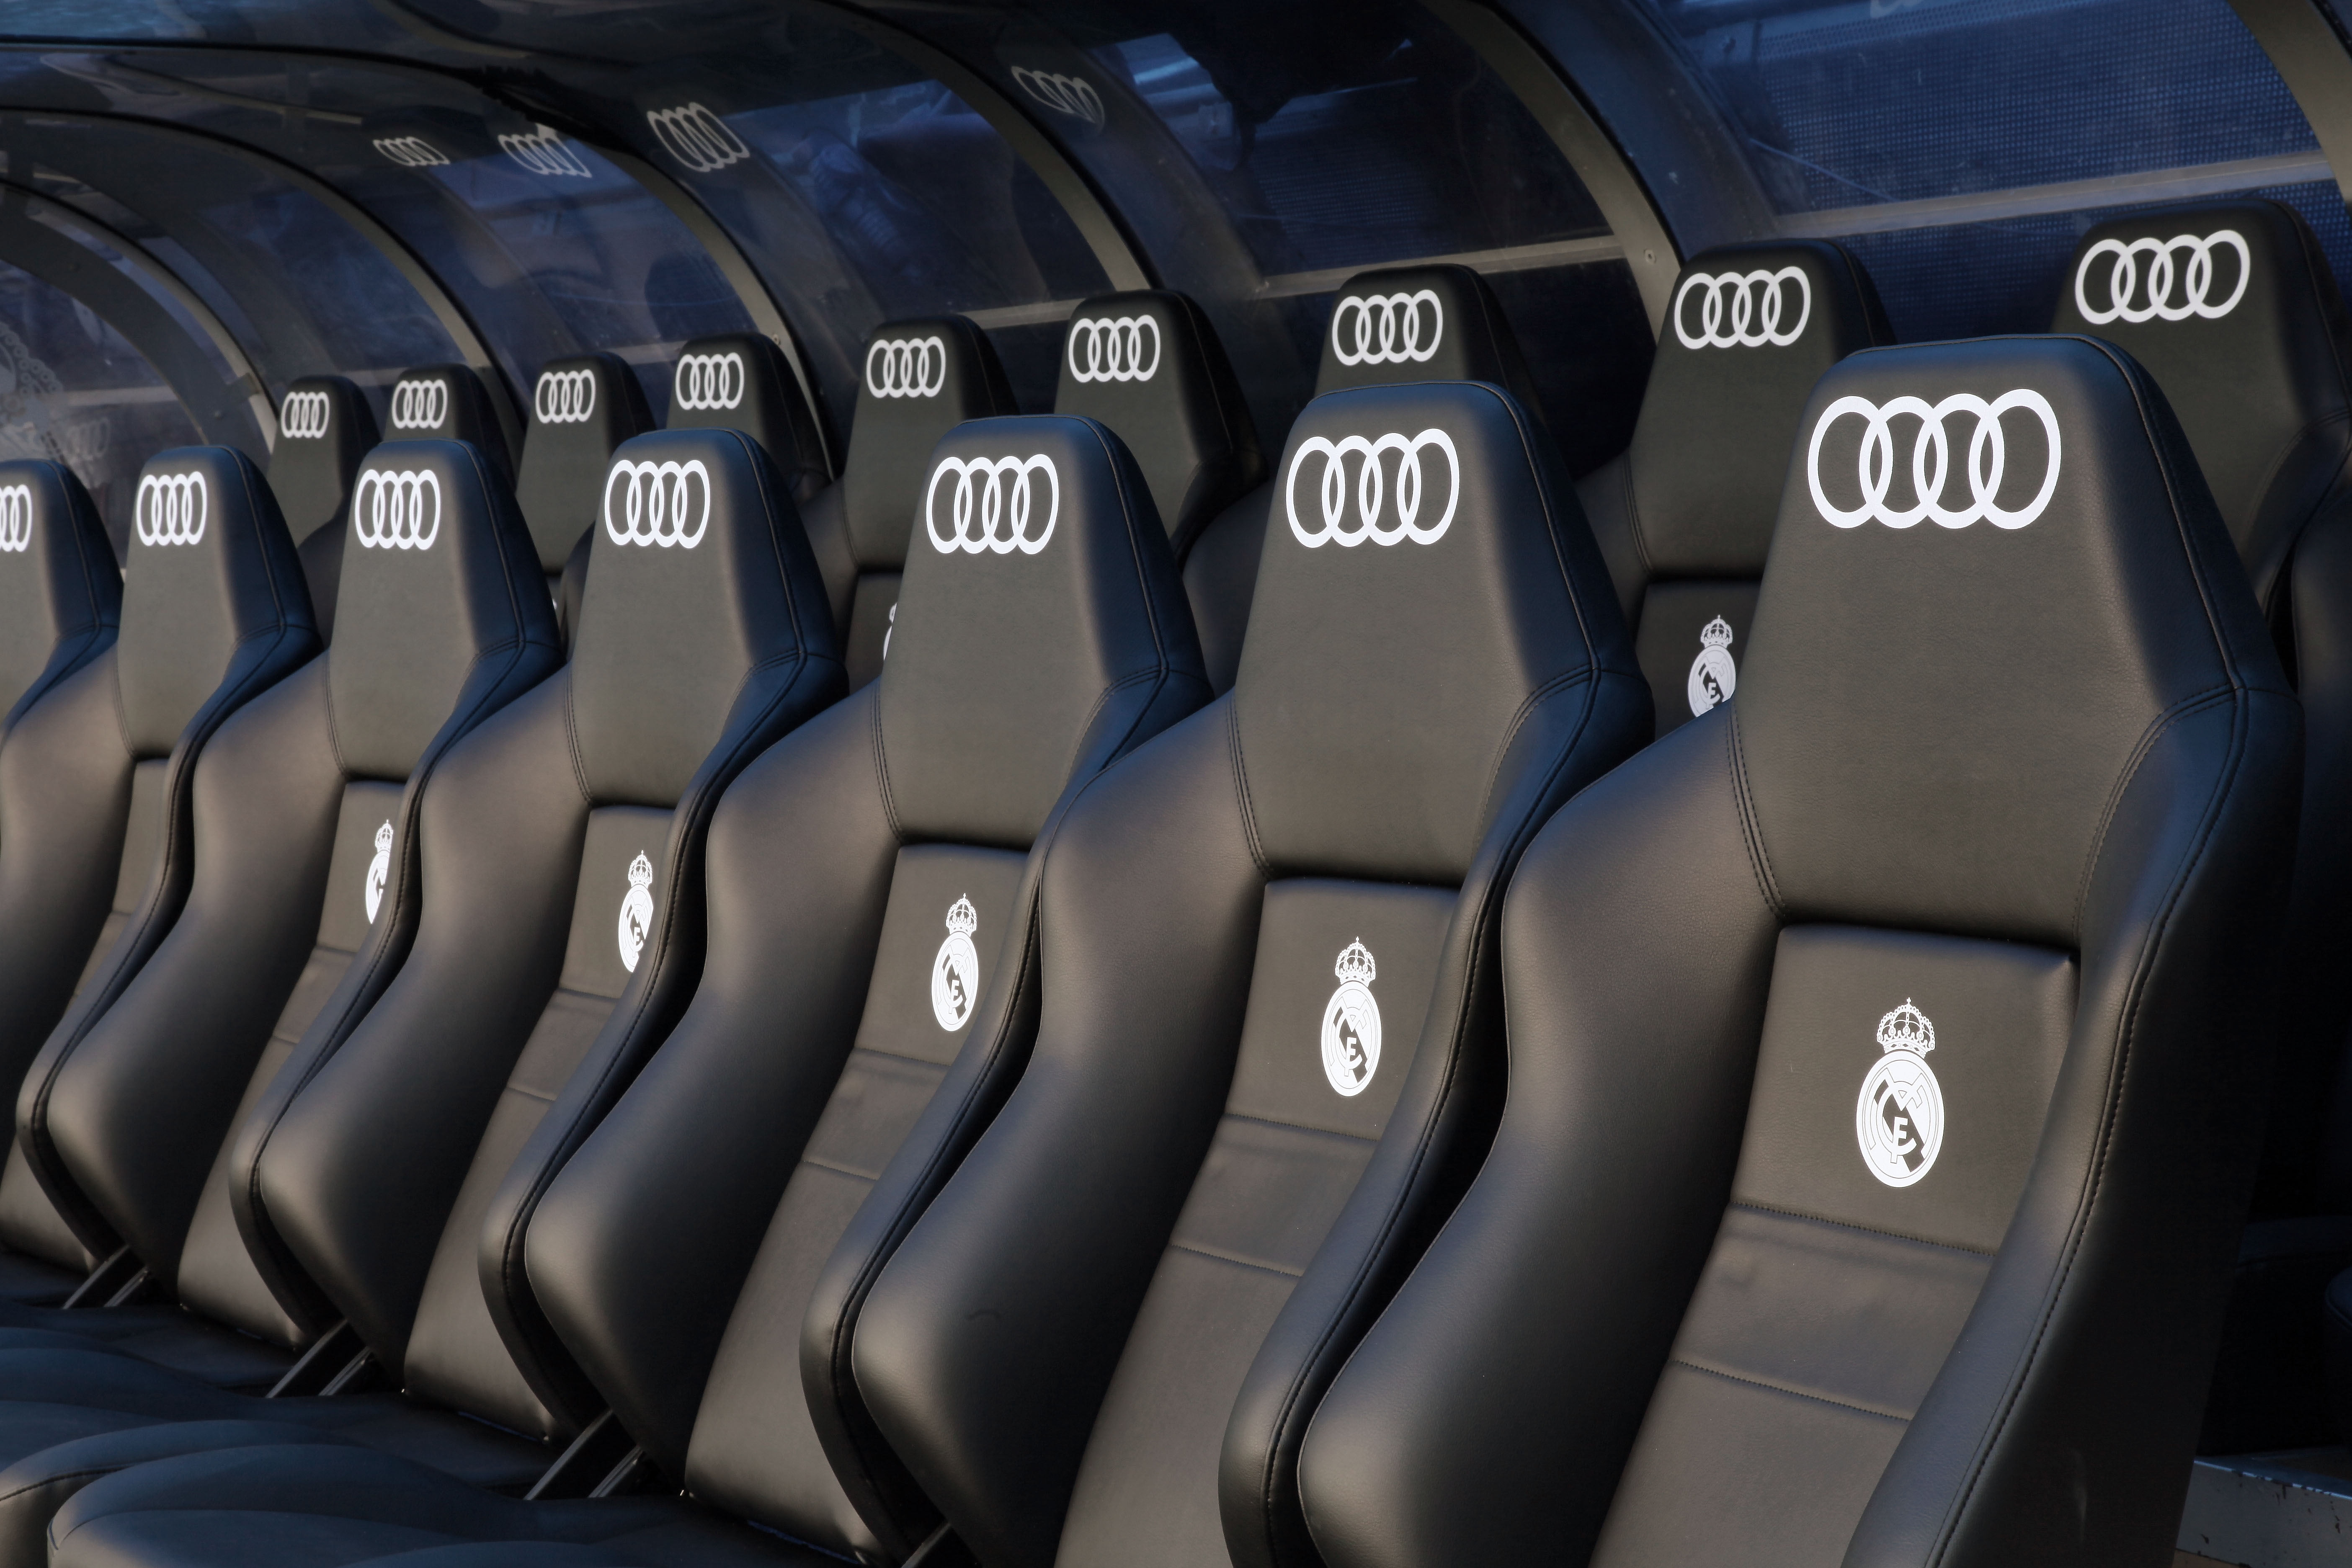 Banquillo Real Madrid Audi